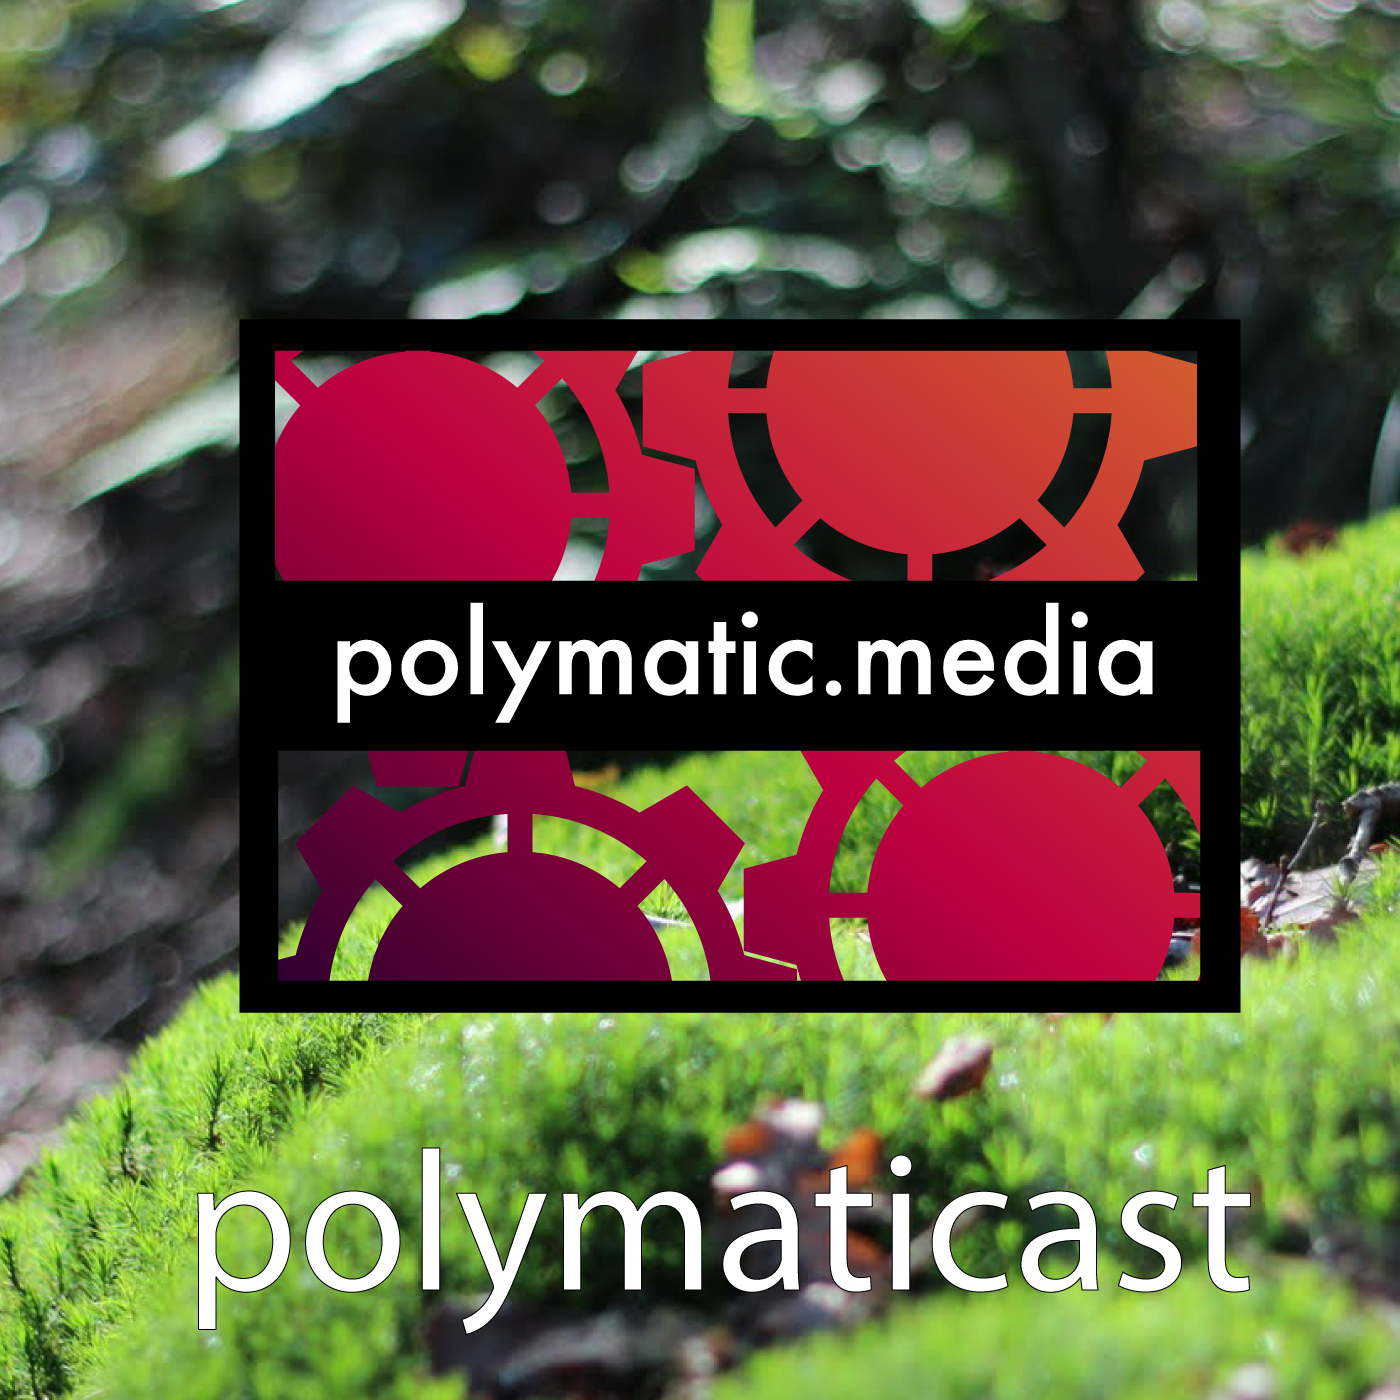 Polymaticast 57 – It's the endgame now! #spoilers